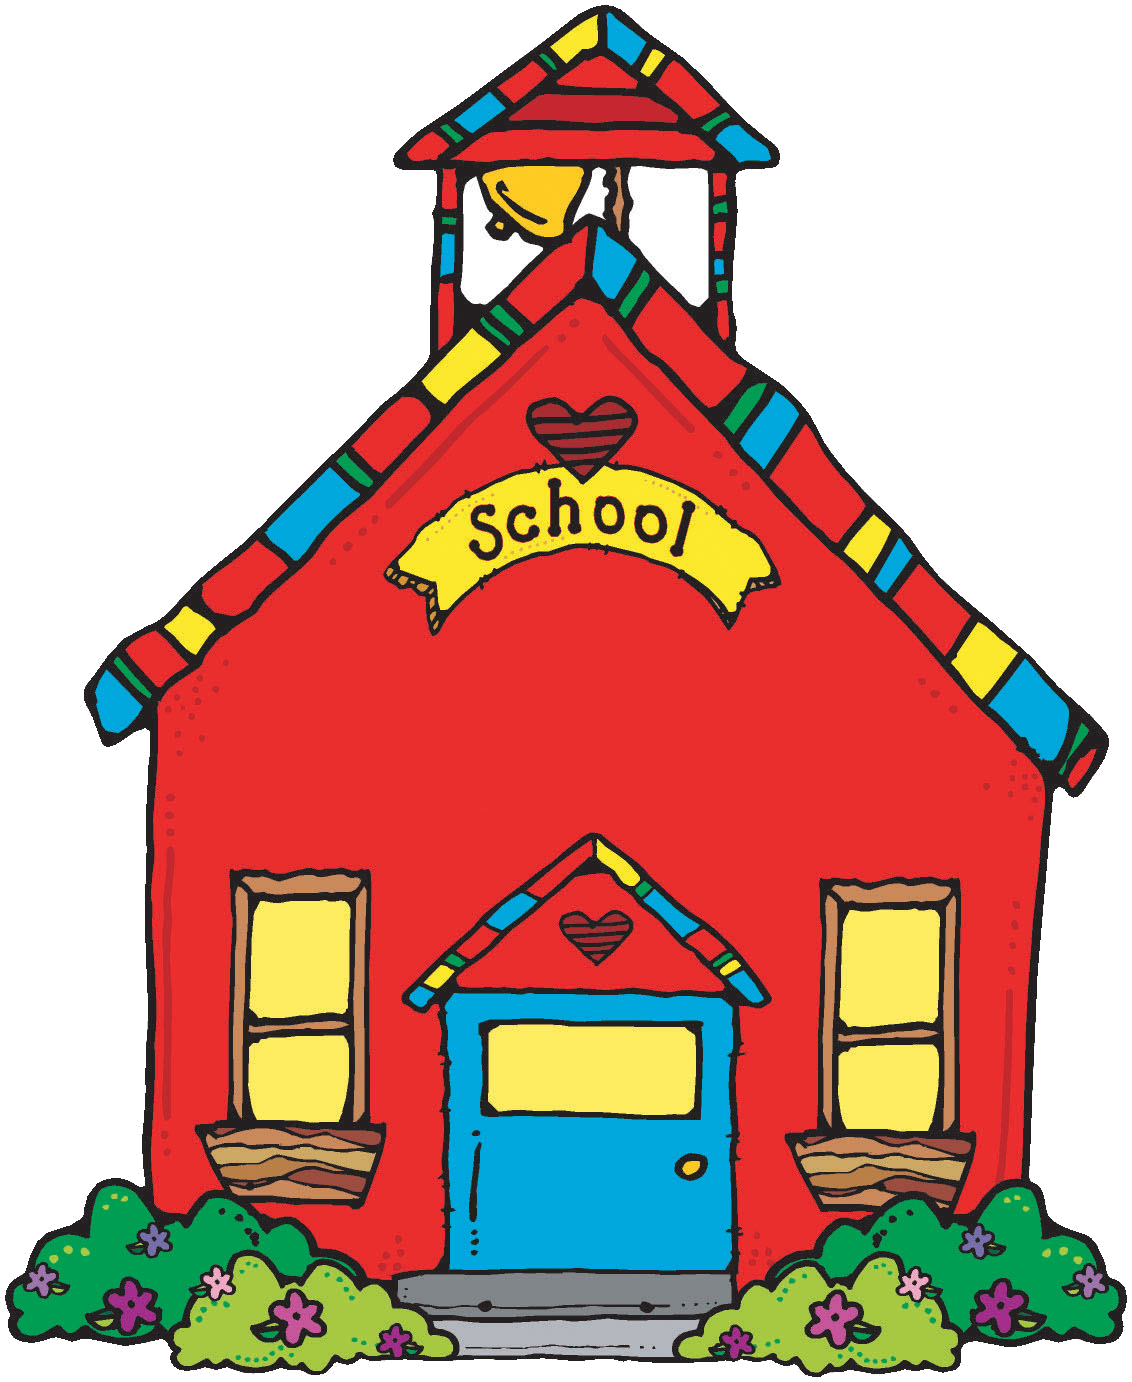 School Elementary Clip Art Clipart Collection Transparent Png.